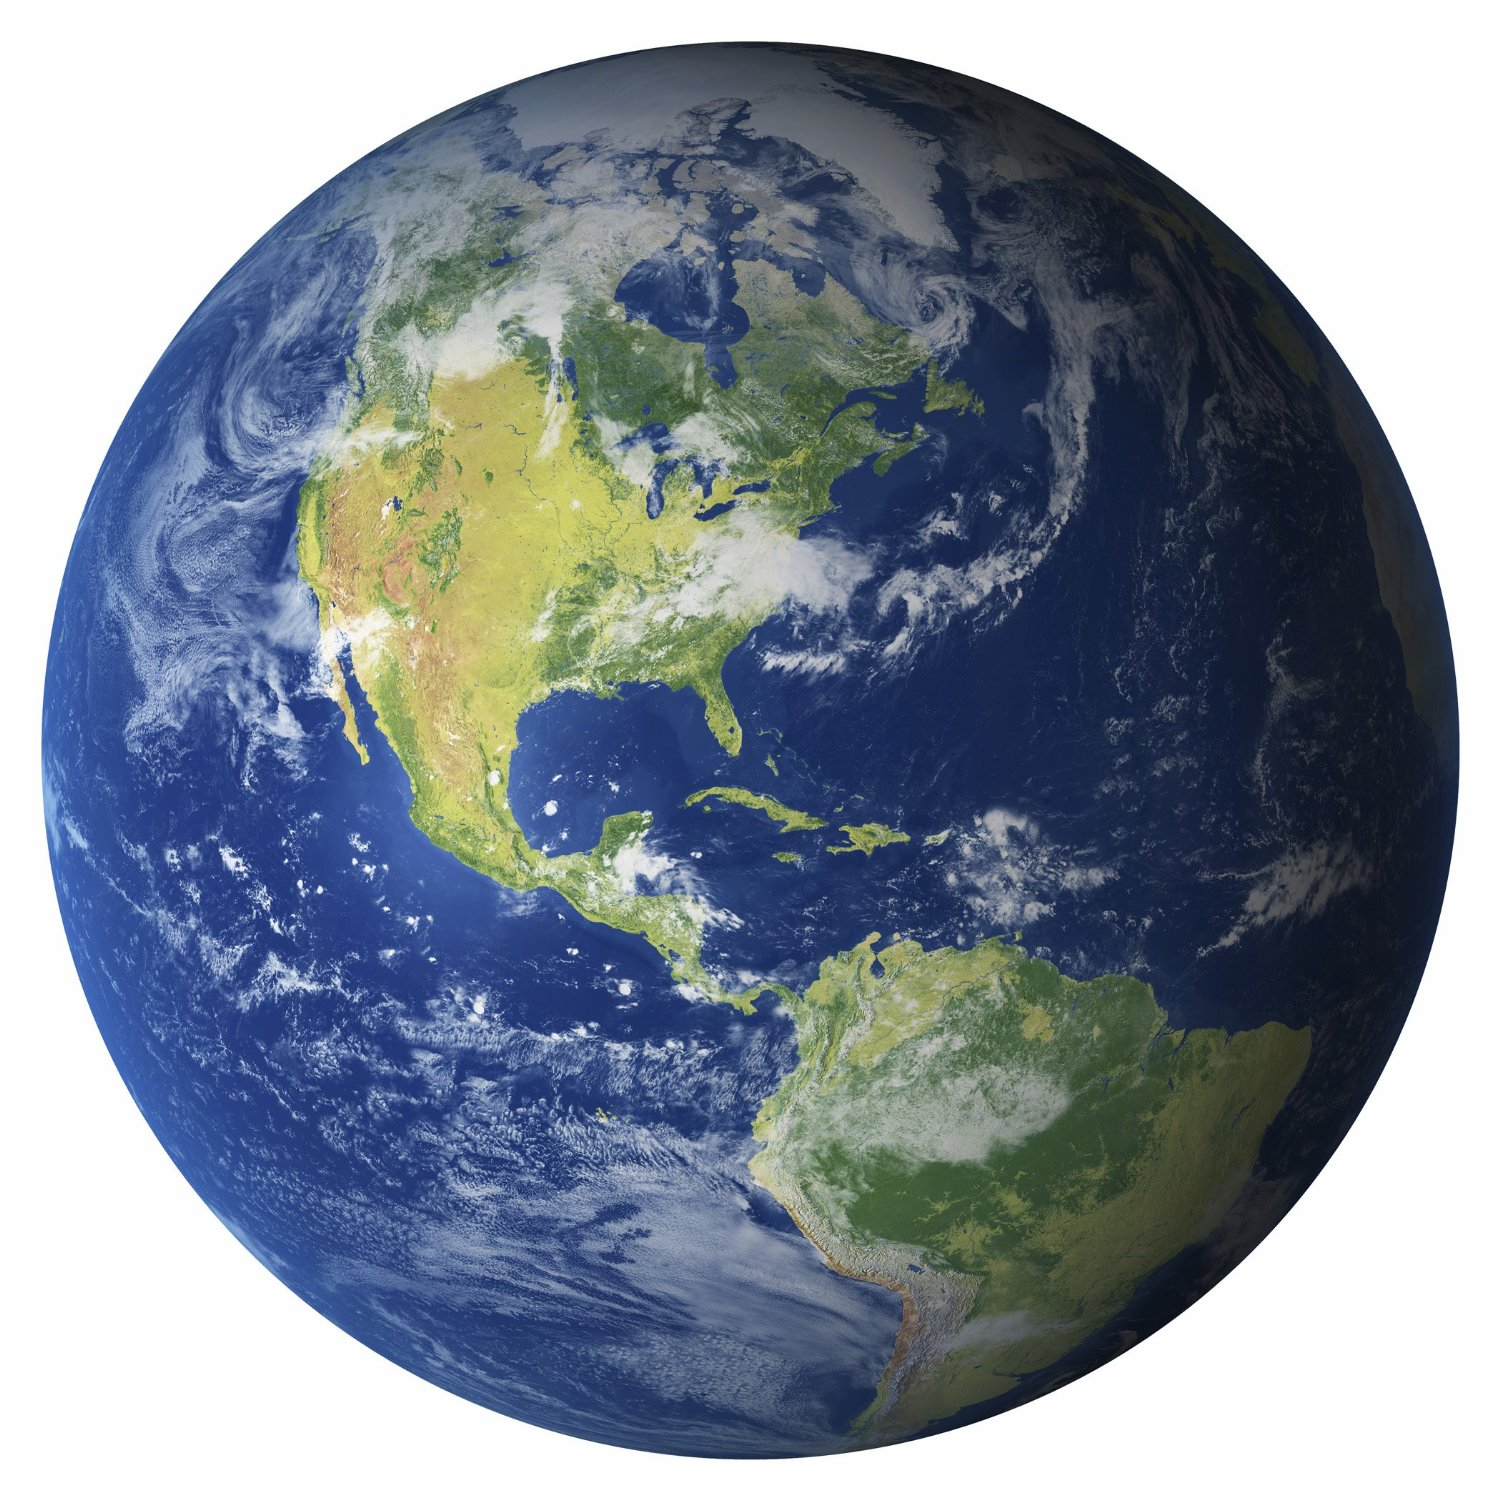 America on Earth Globe 8823.66 Kb